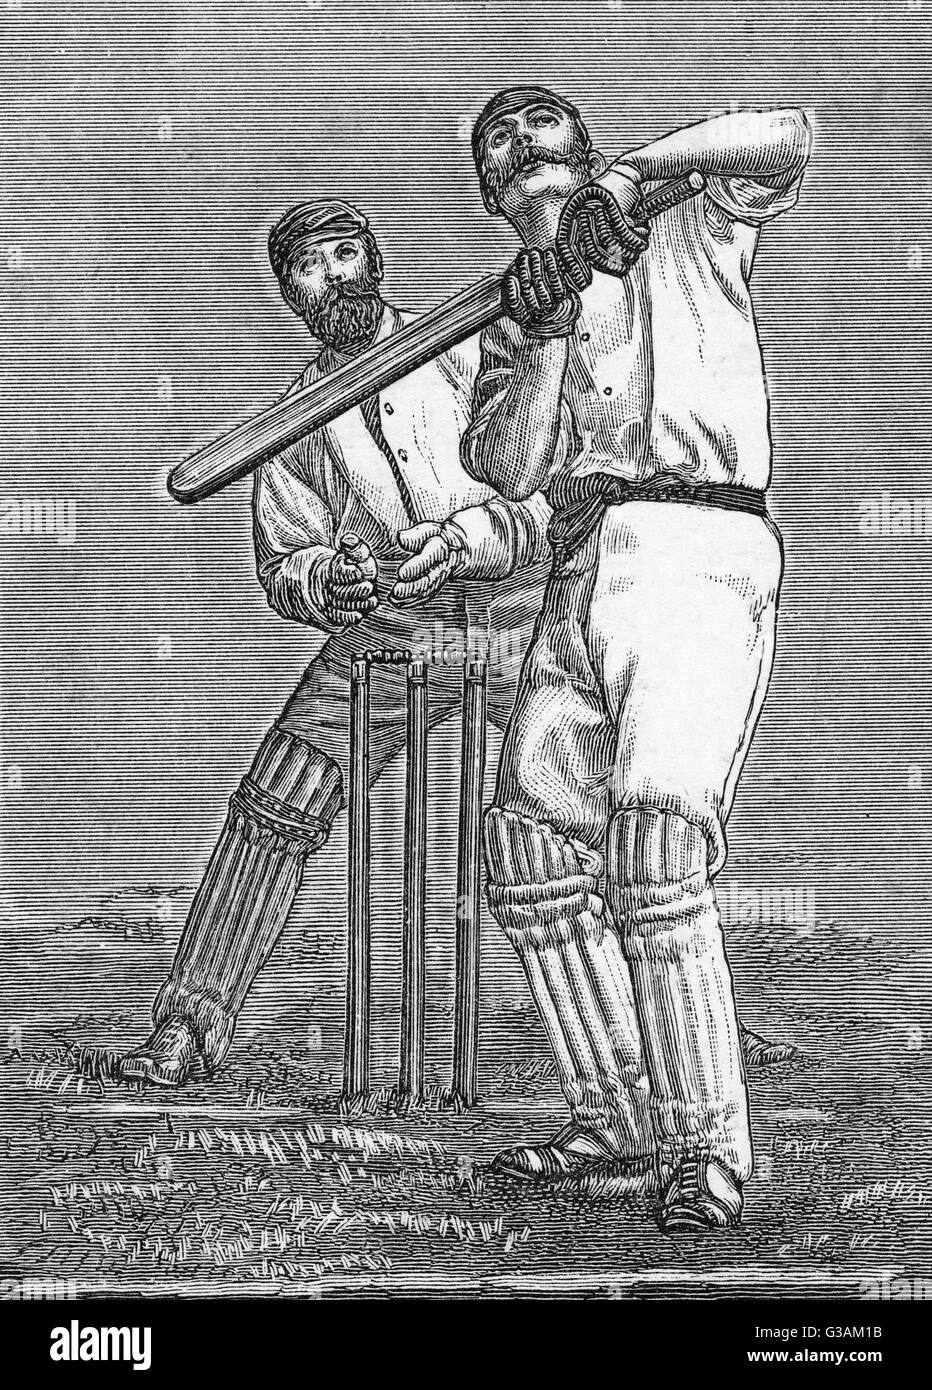 A pokey batsman dealing with a high-dropping full-pitch.     Date: 1888 Stock Photo